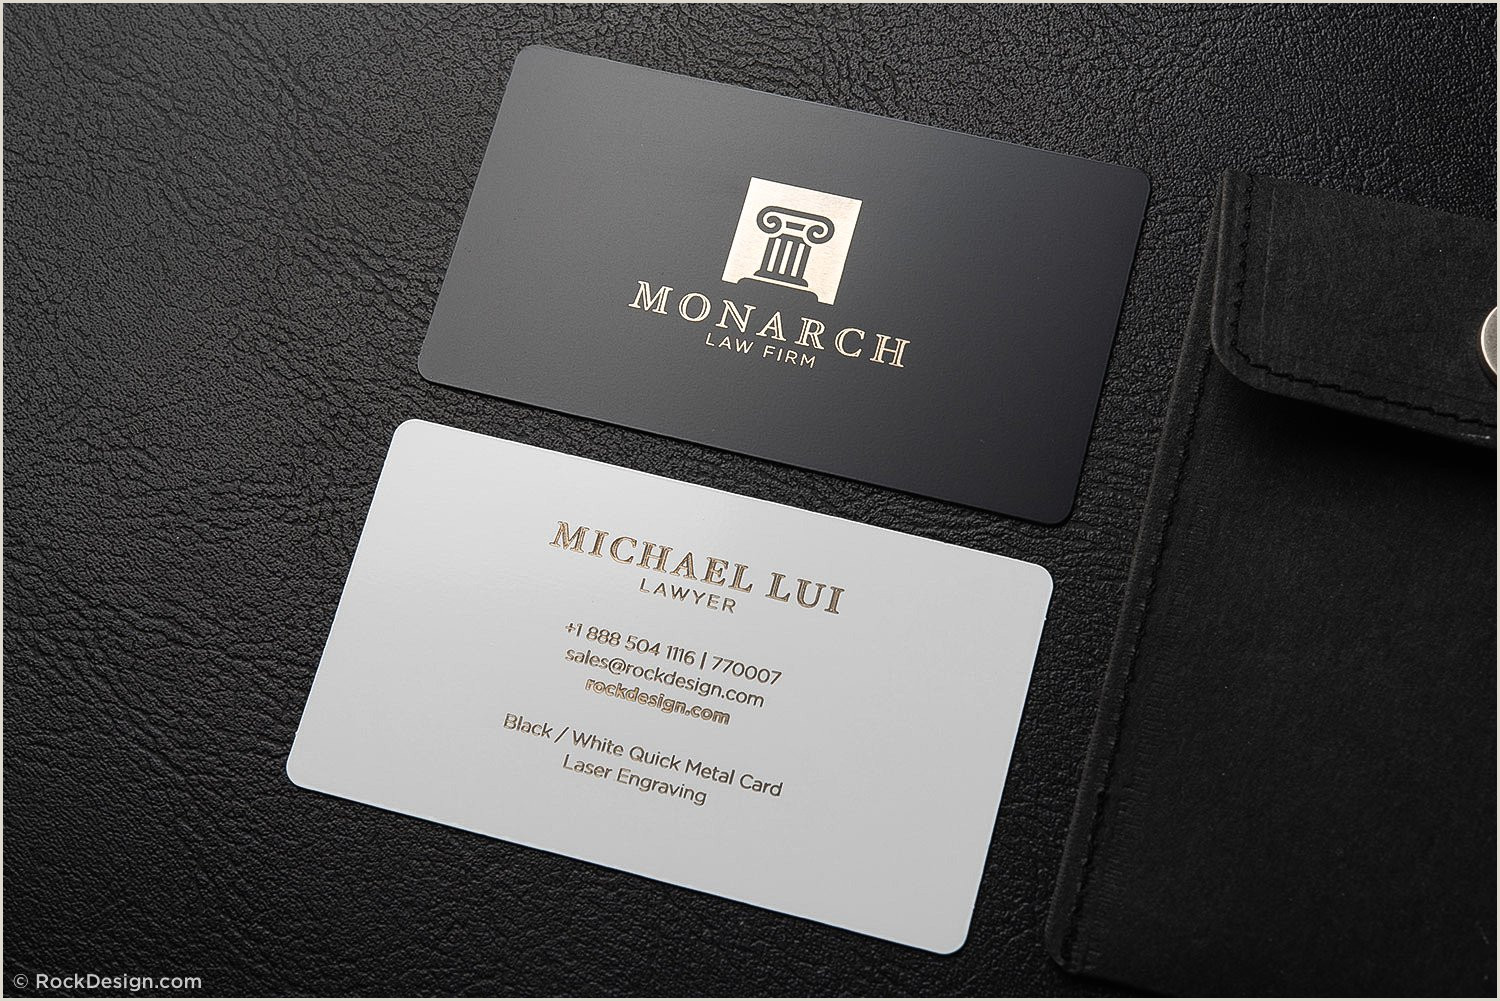 Unique Law Firm Business Cards Top 25 Professional Lawyer Business Cards Tips & Examples